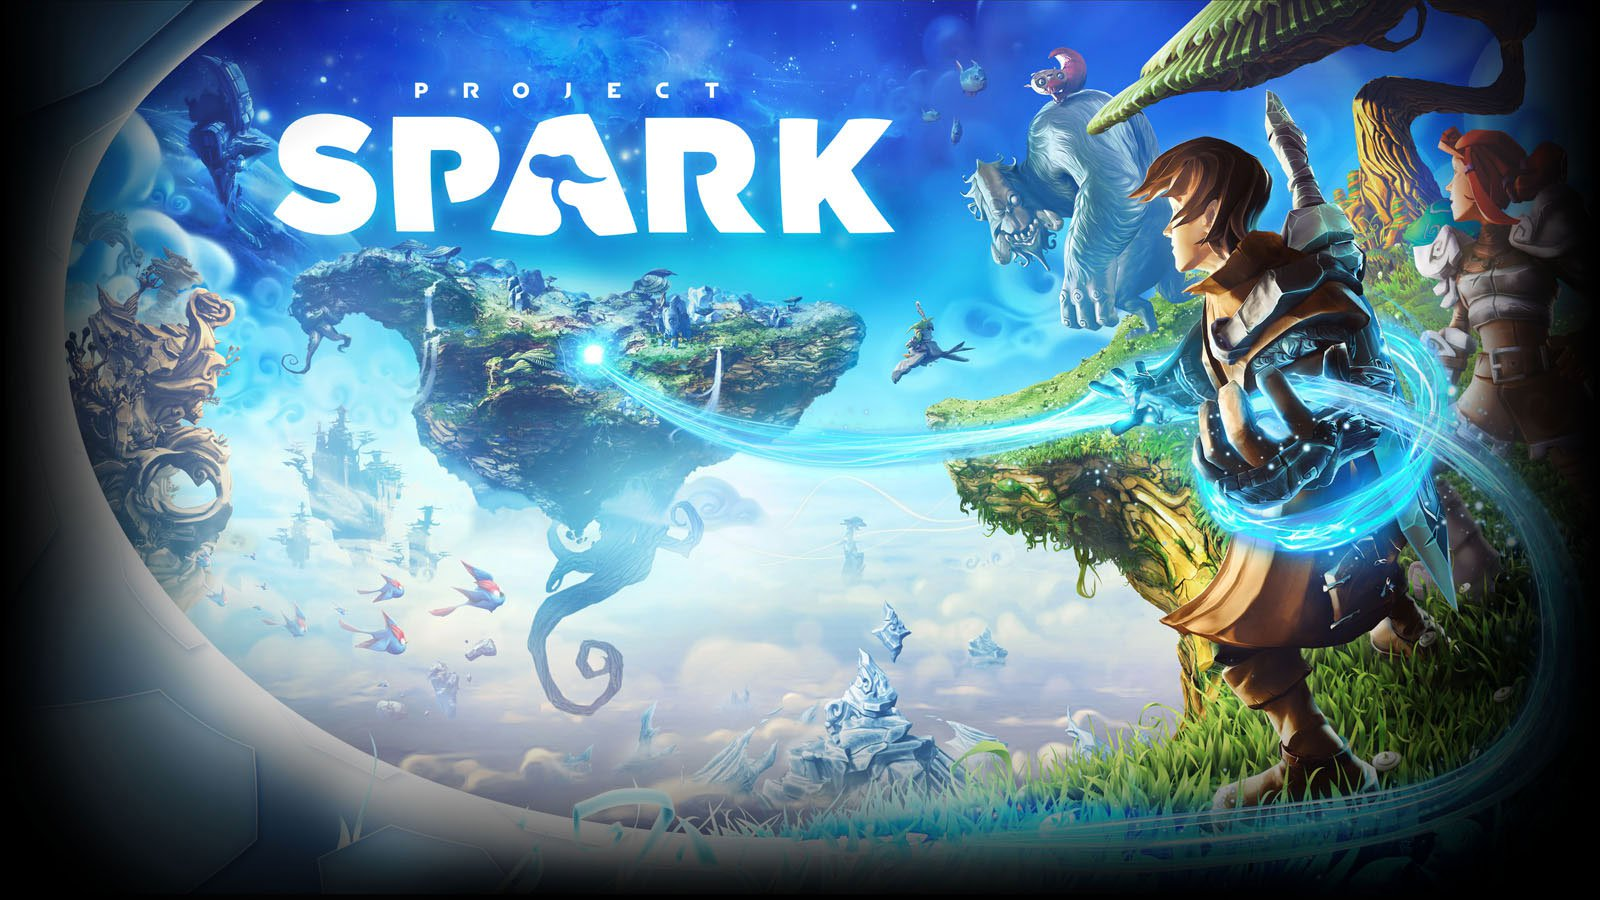 Project Spark to be out of beta on October 7, will be available on Windows 8 and Xbox One